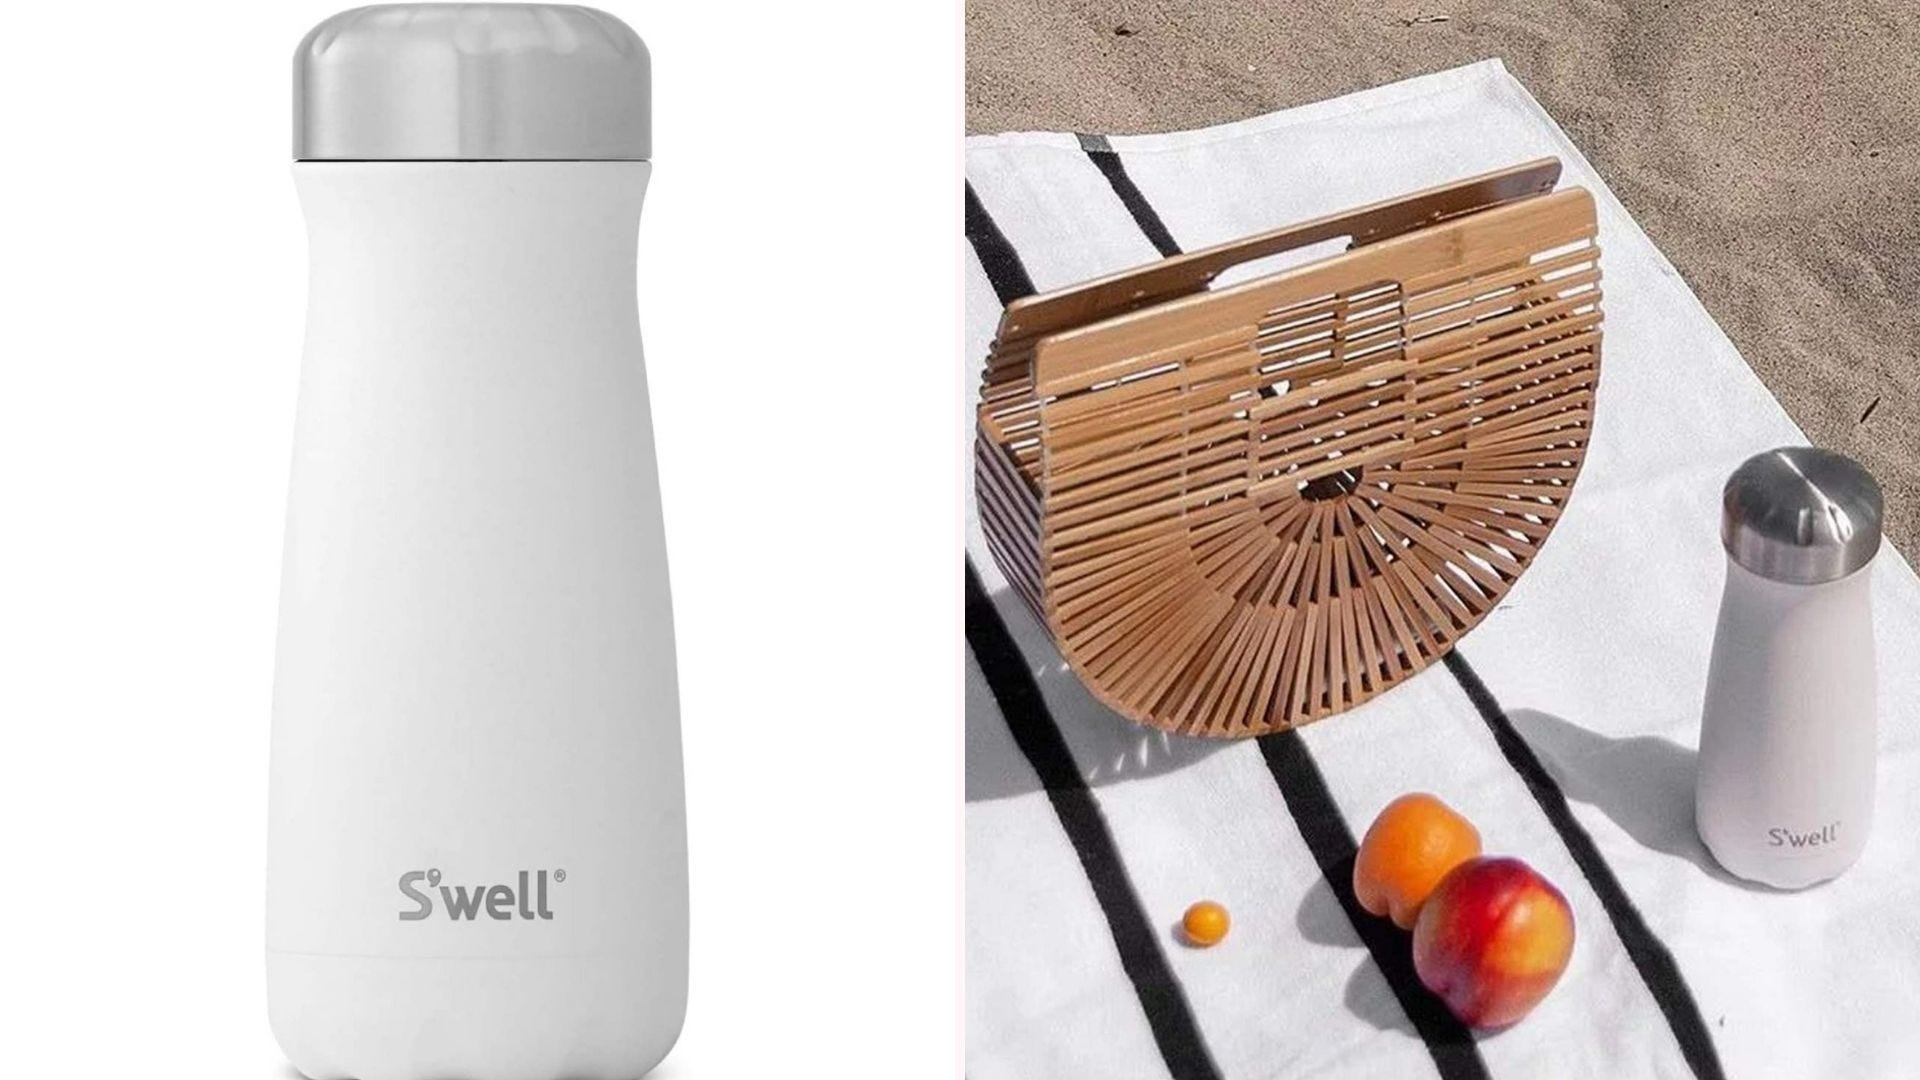 a white insulated mug with a silver lid resting on a towel by a basket and some fruit